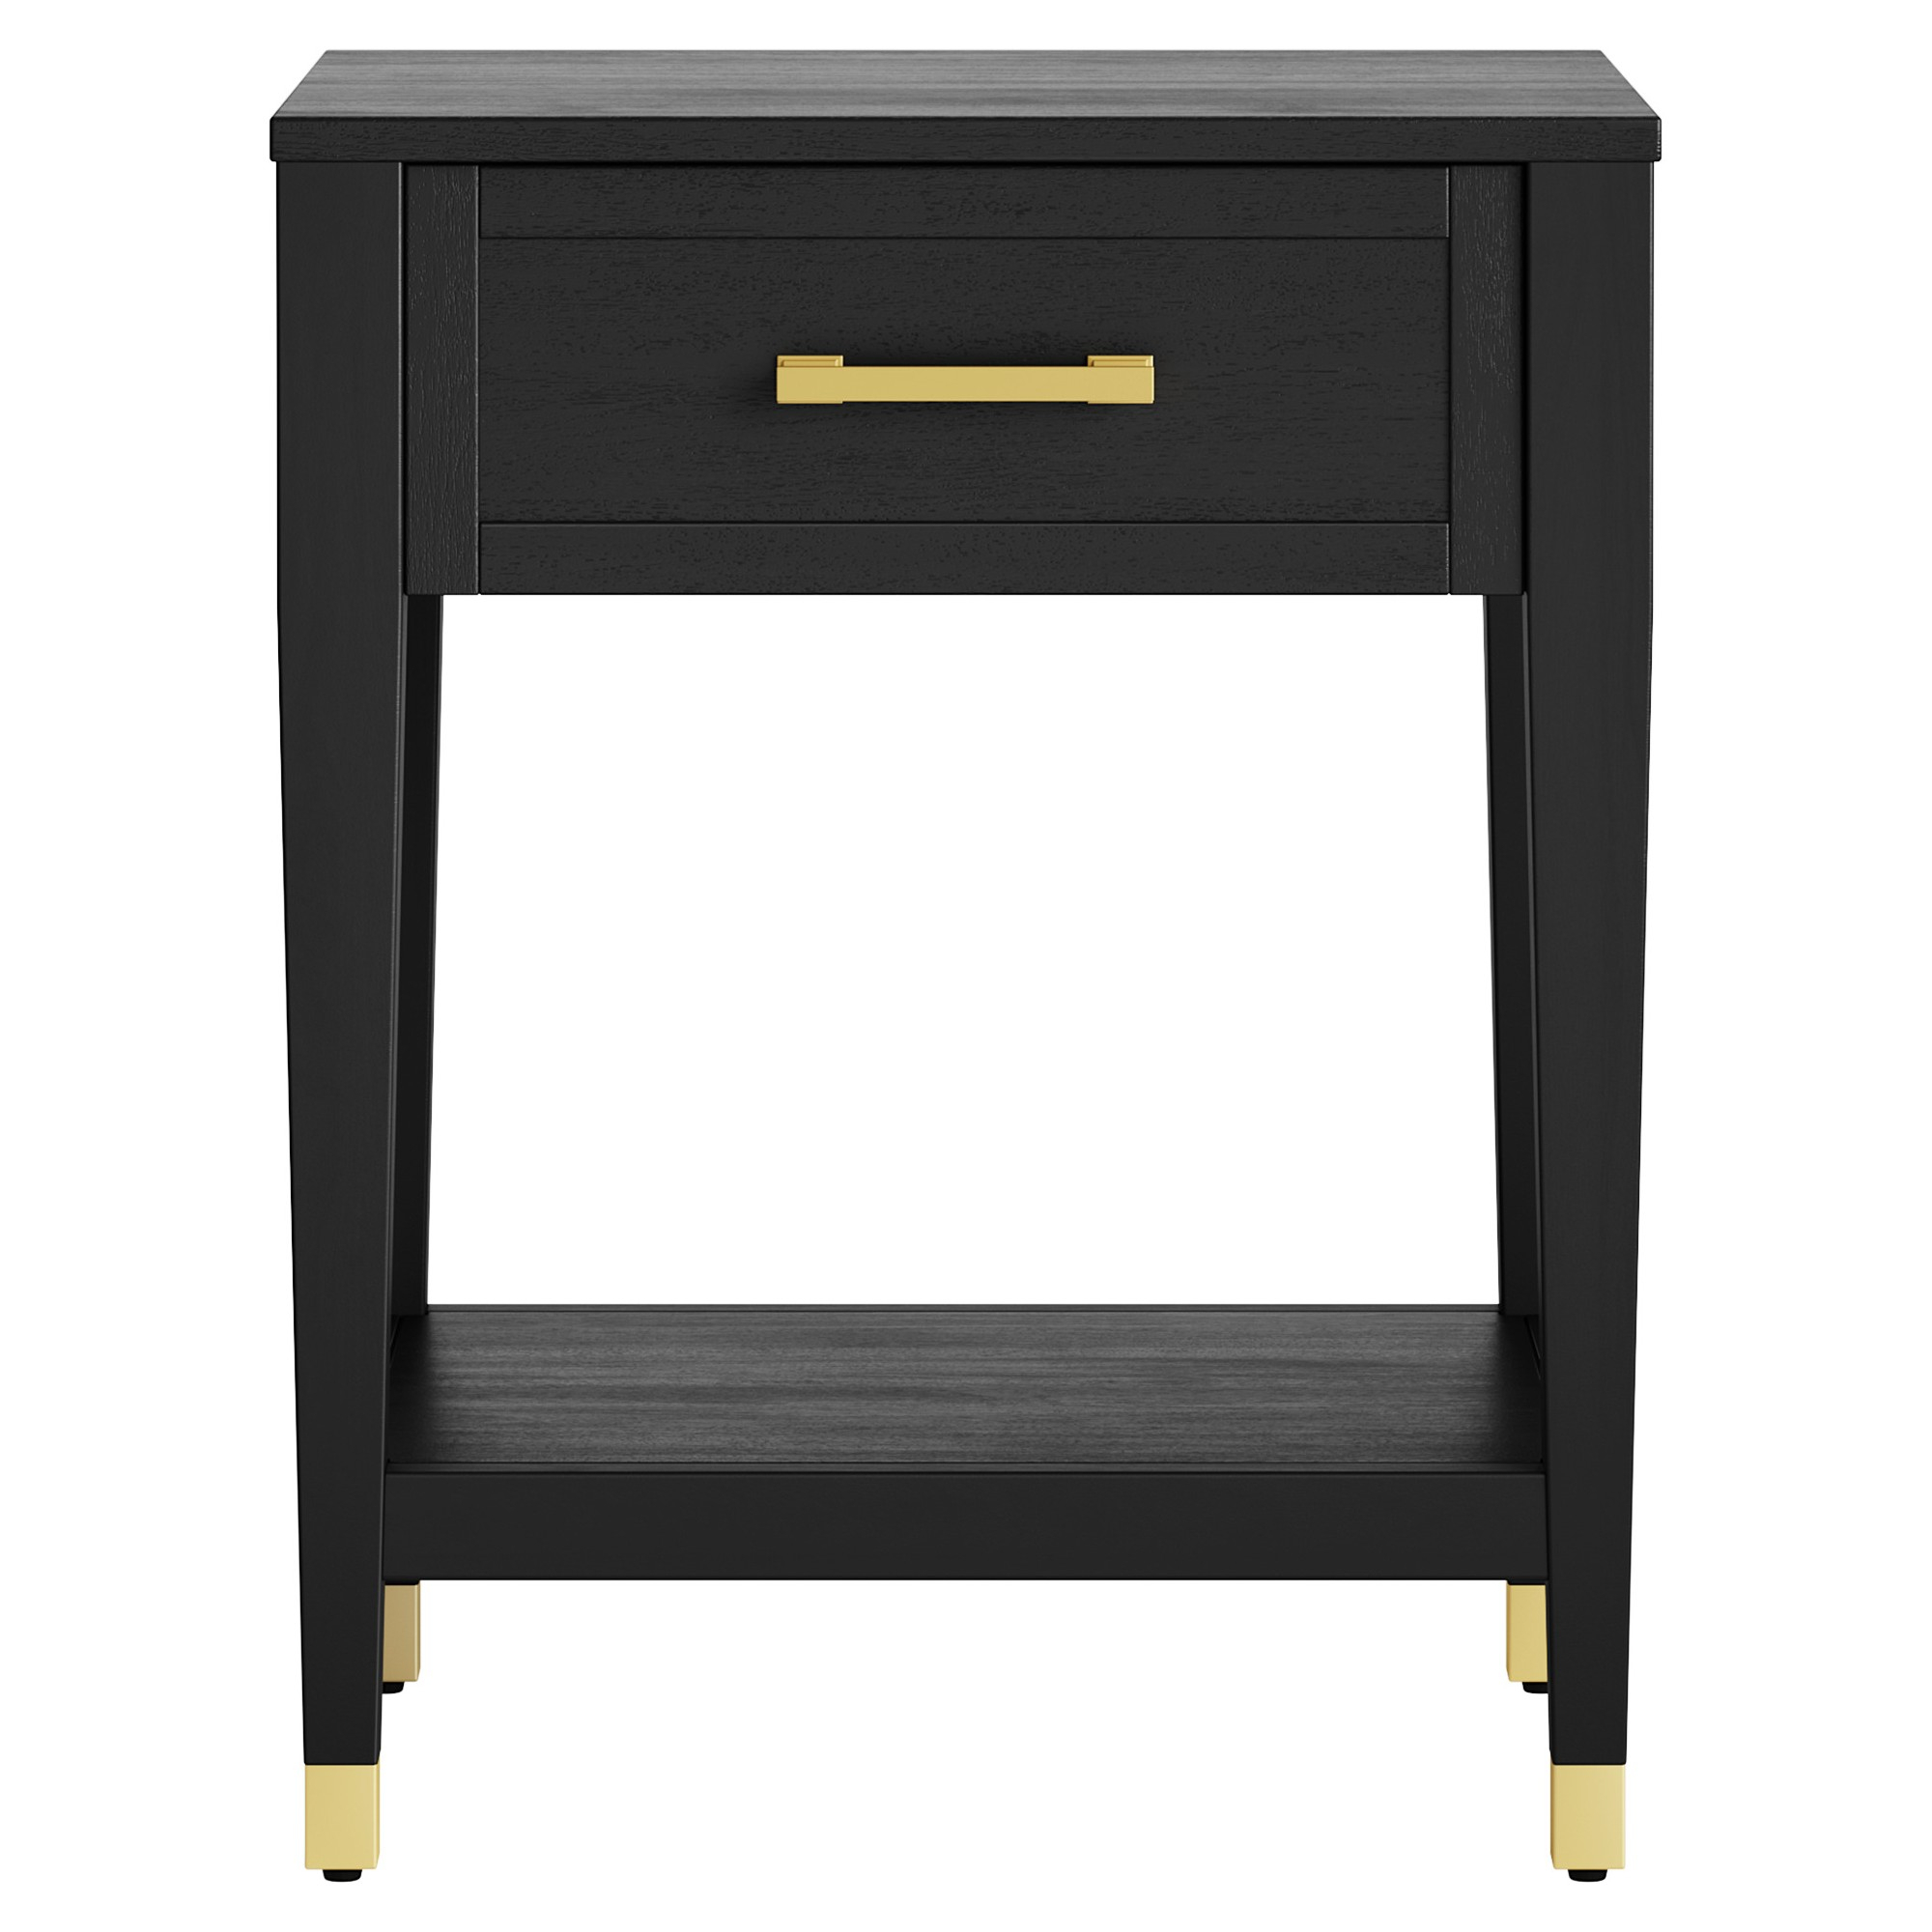 Aged Iron Cube Tables Inside Favorite Duxbury Black End Table With Gold Feet – Threshold In 2018 (Gallery 17 of 20)